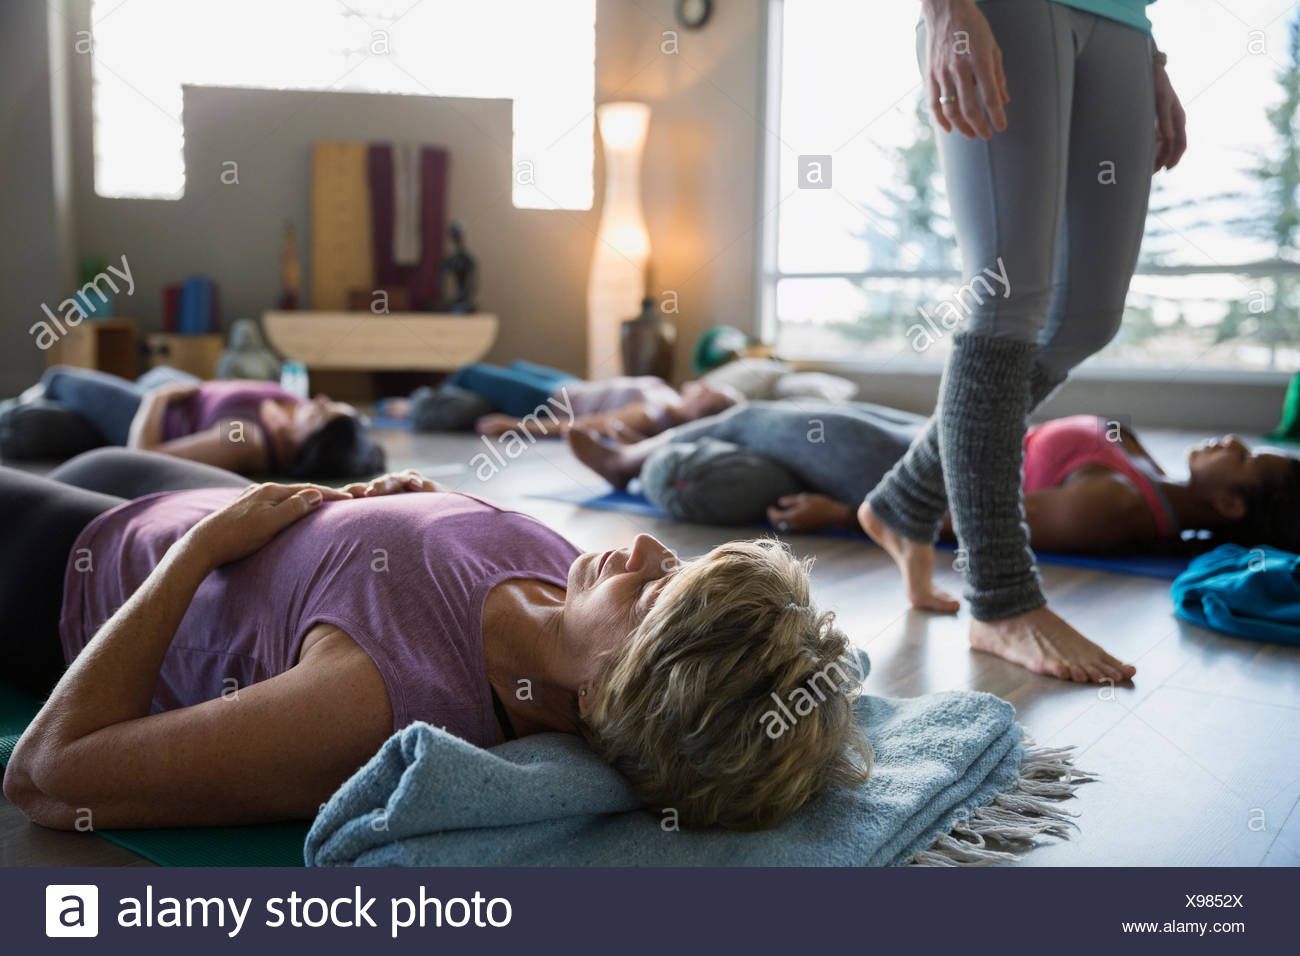 Women laying supported corpse pose in restorative yoga - Stock Image